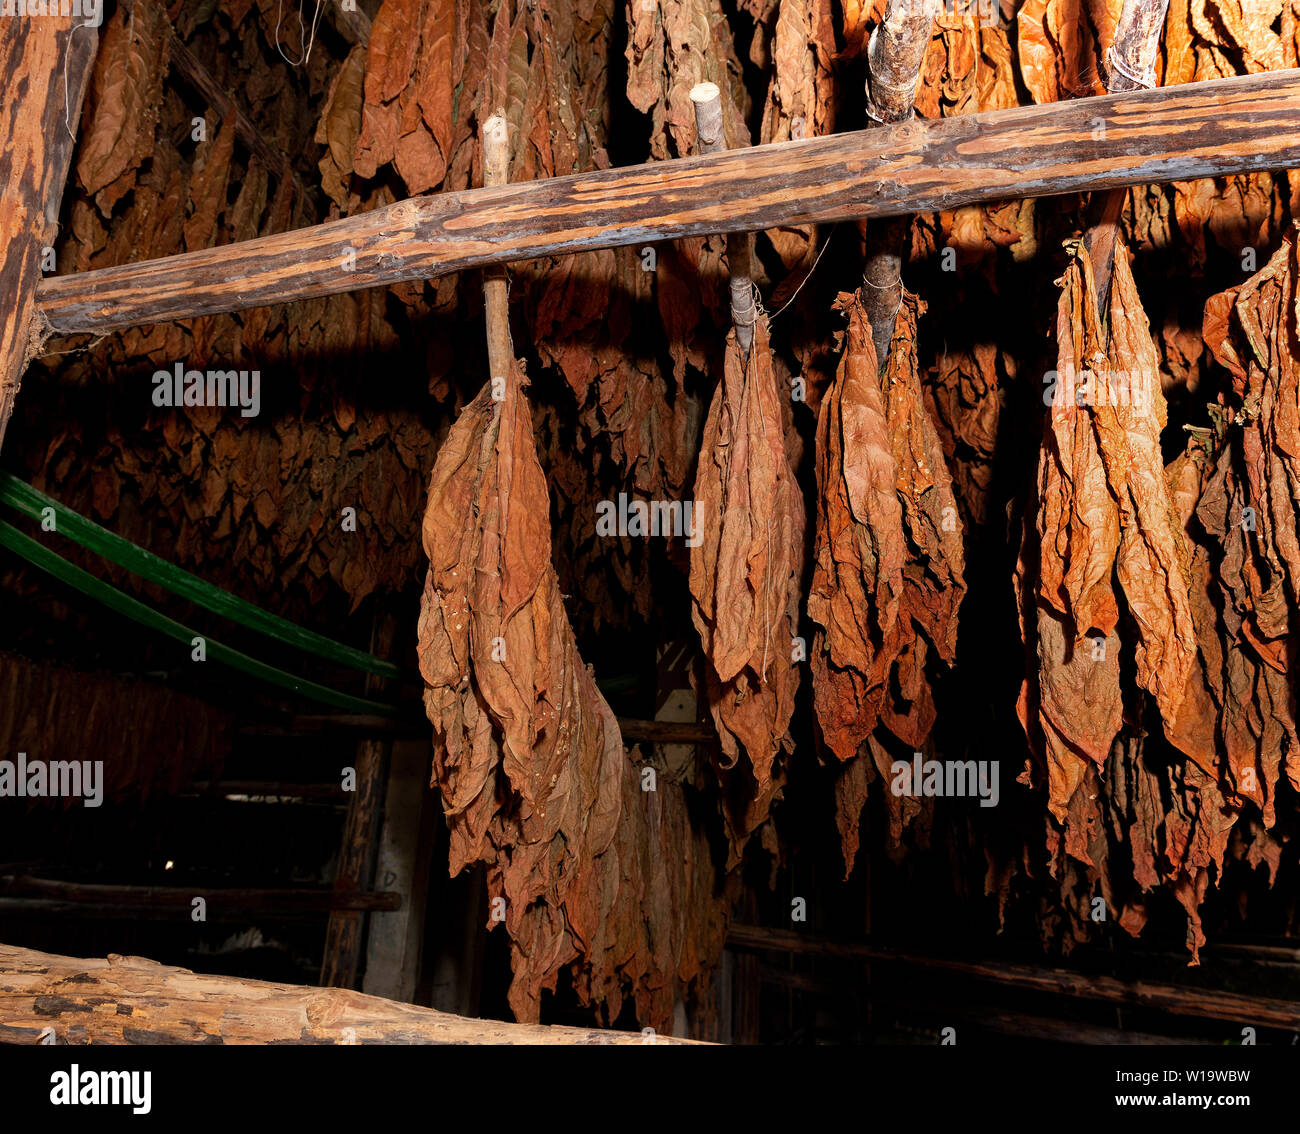 Drying shed full of tobacco leaves being dried in the rural village of San Juan y Martinez, Pinar del Rio Province, Cuba - Stock Image